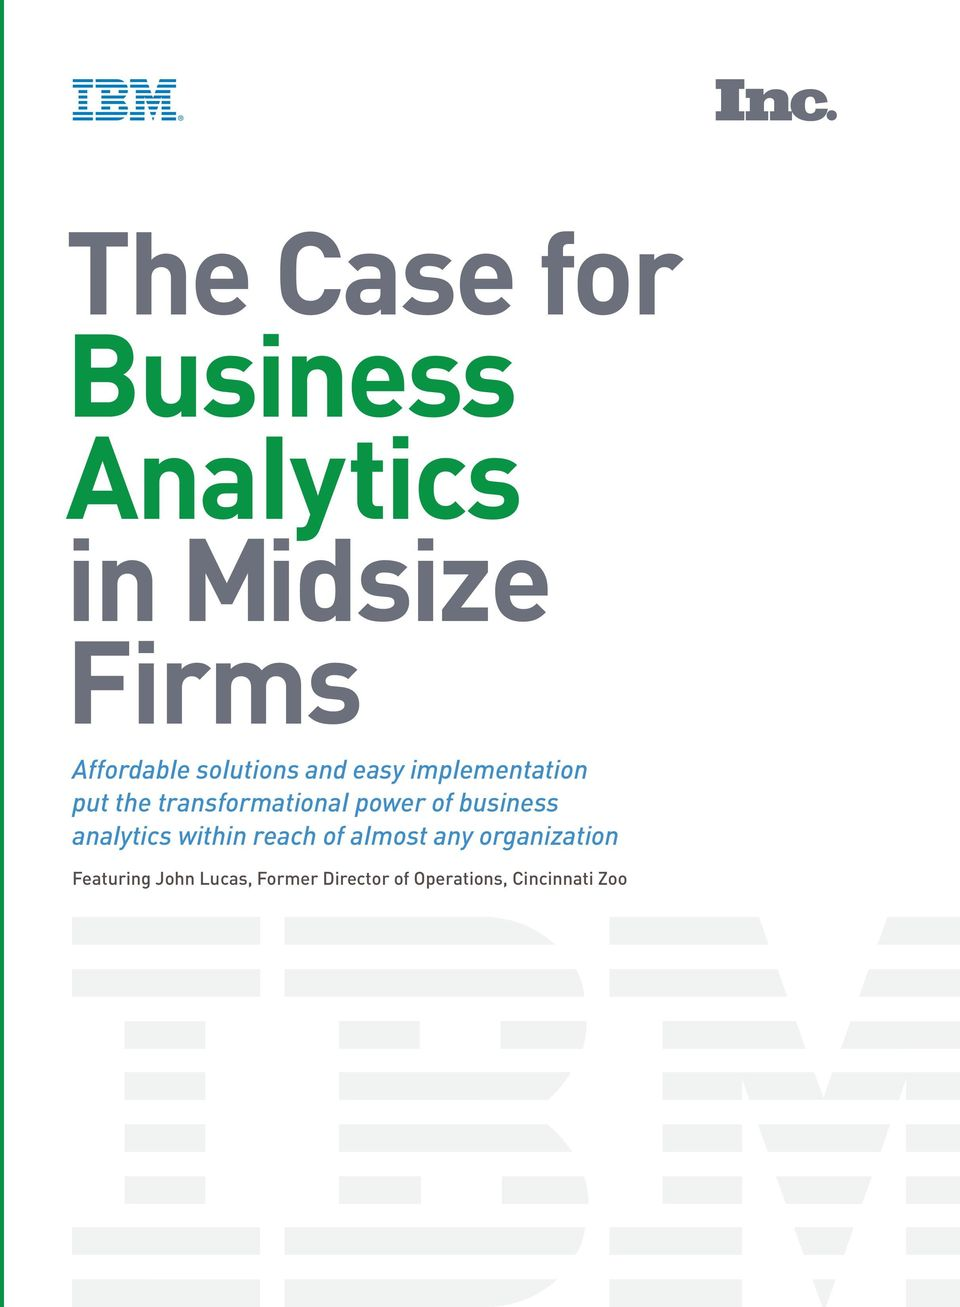 power of business analytics within reach of almost any